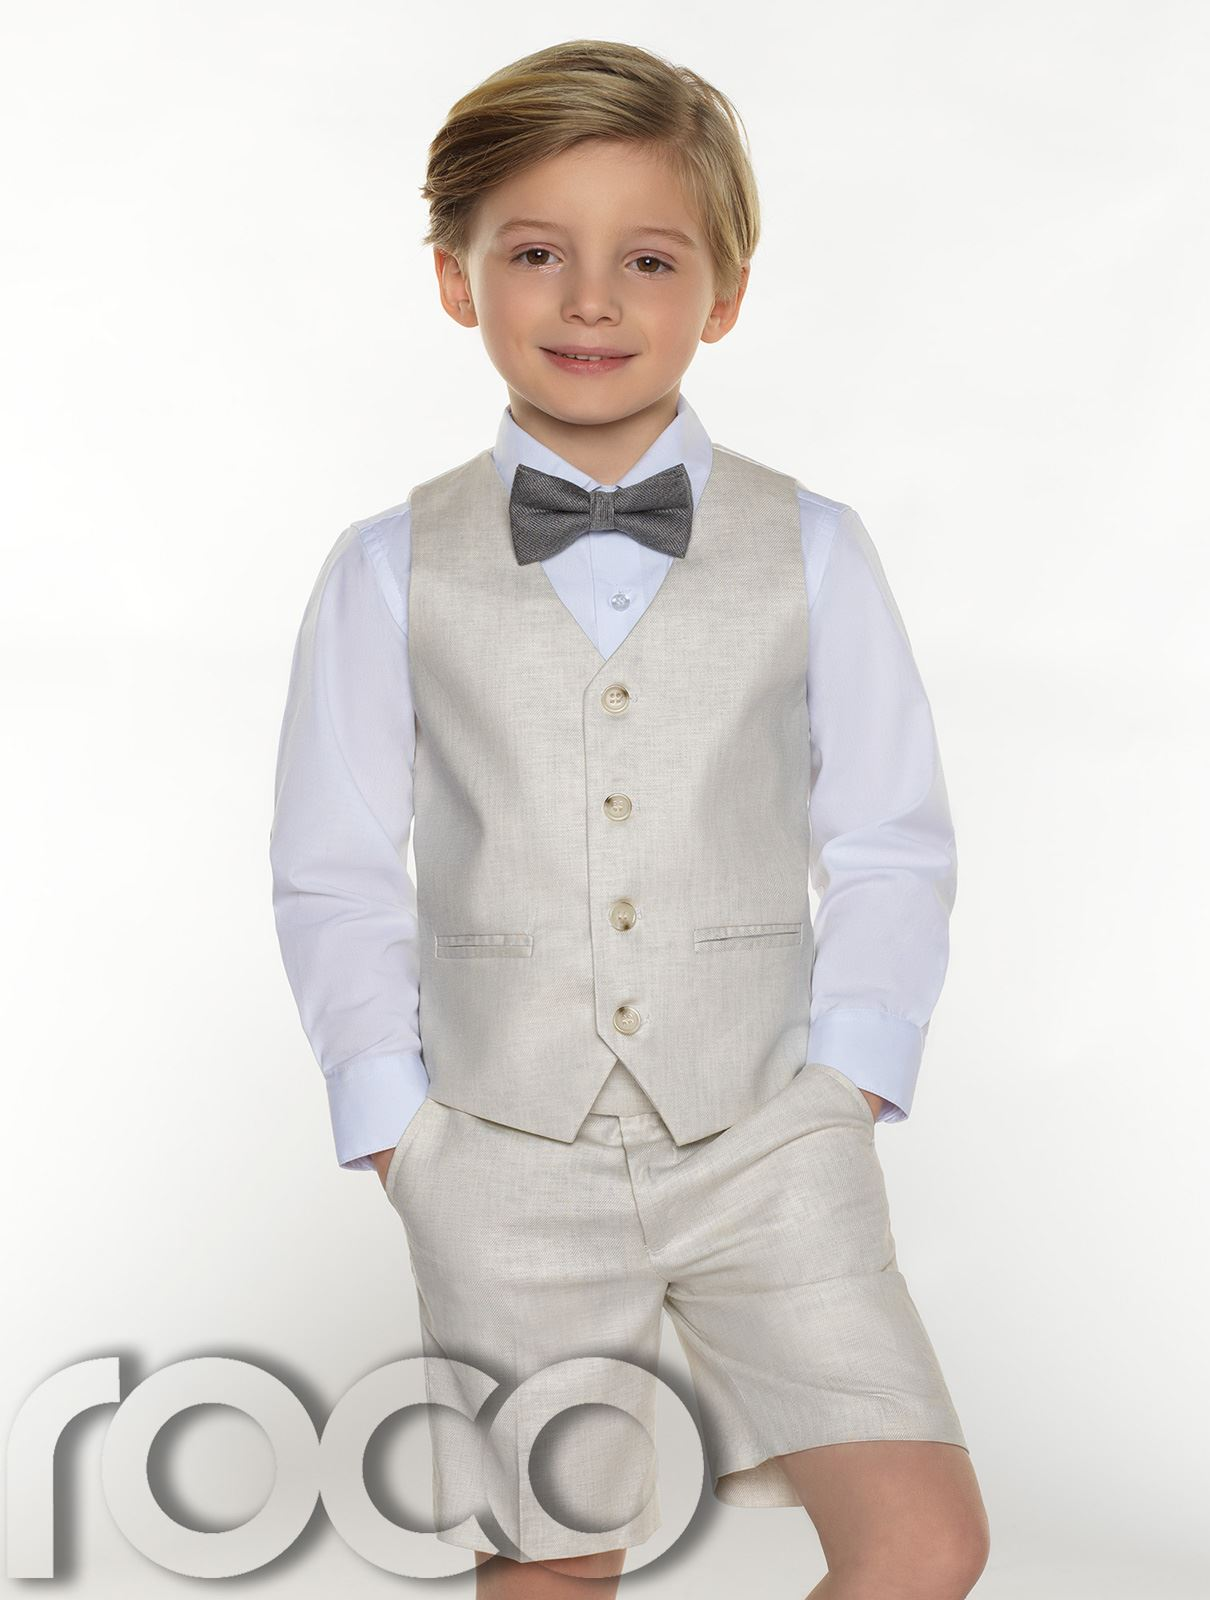 page boy suits boys-suits-boys-linen-suits-page-boy-outfits- xpevwfv